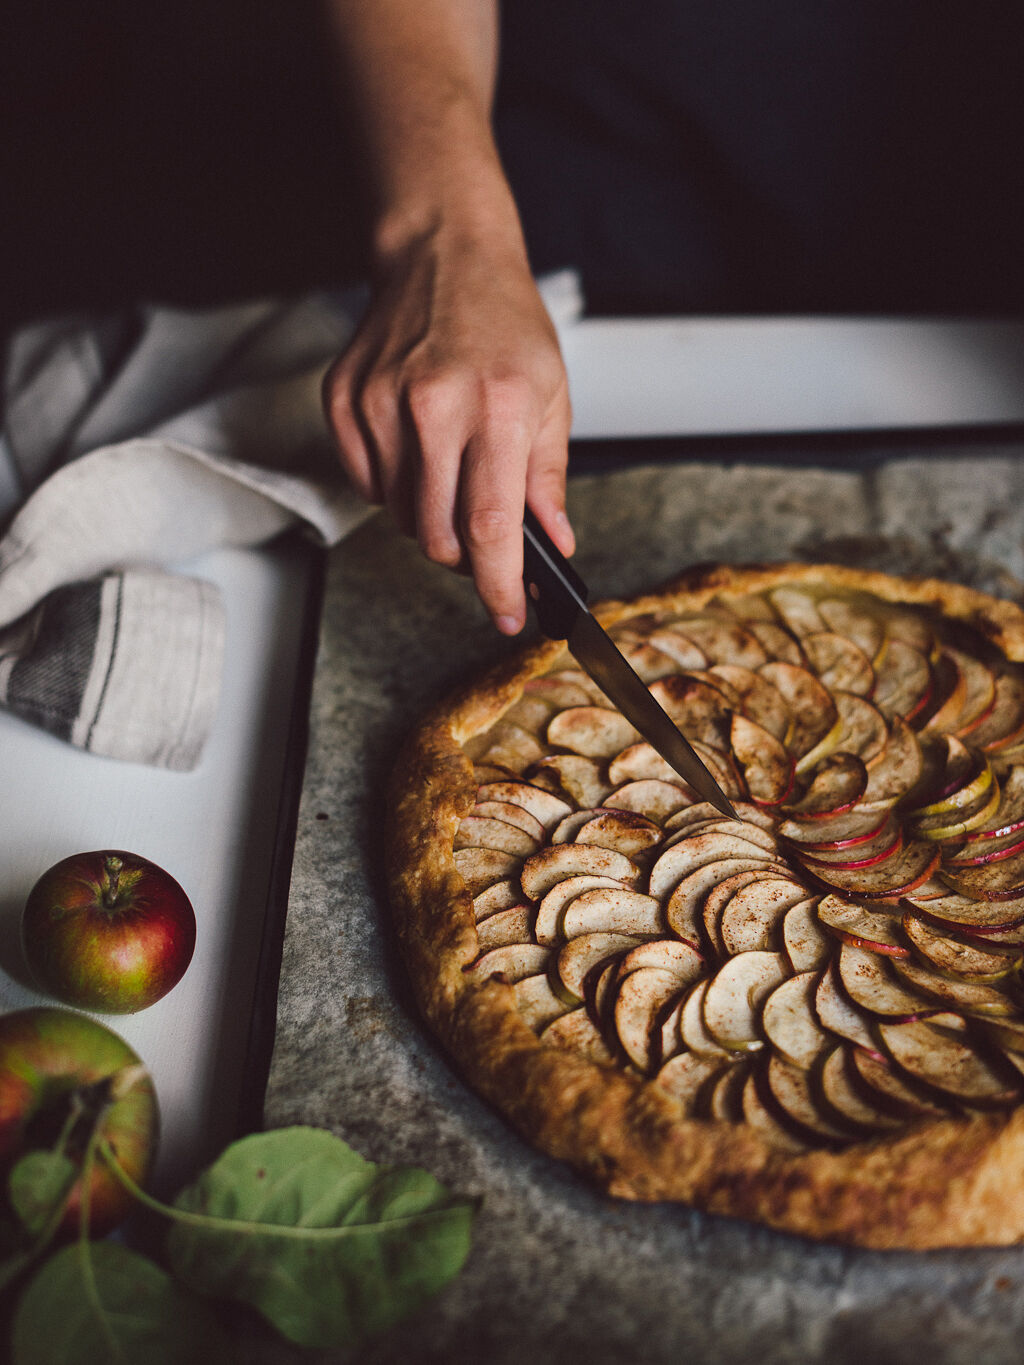 Apple galette by Babes in Boyland